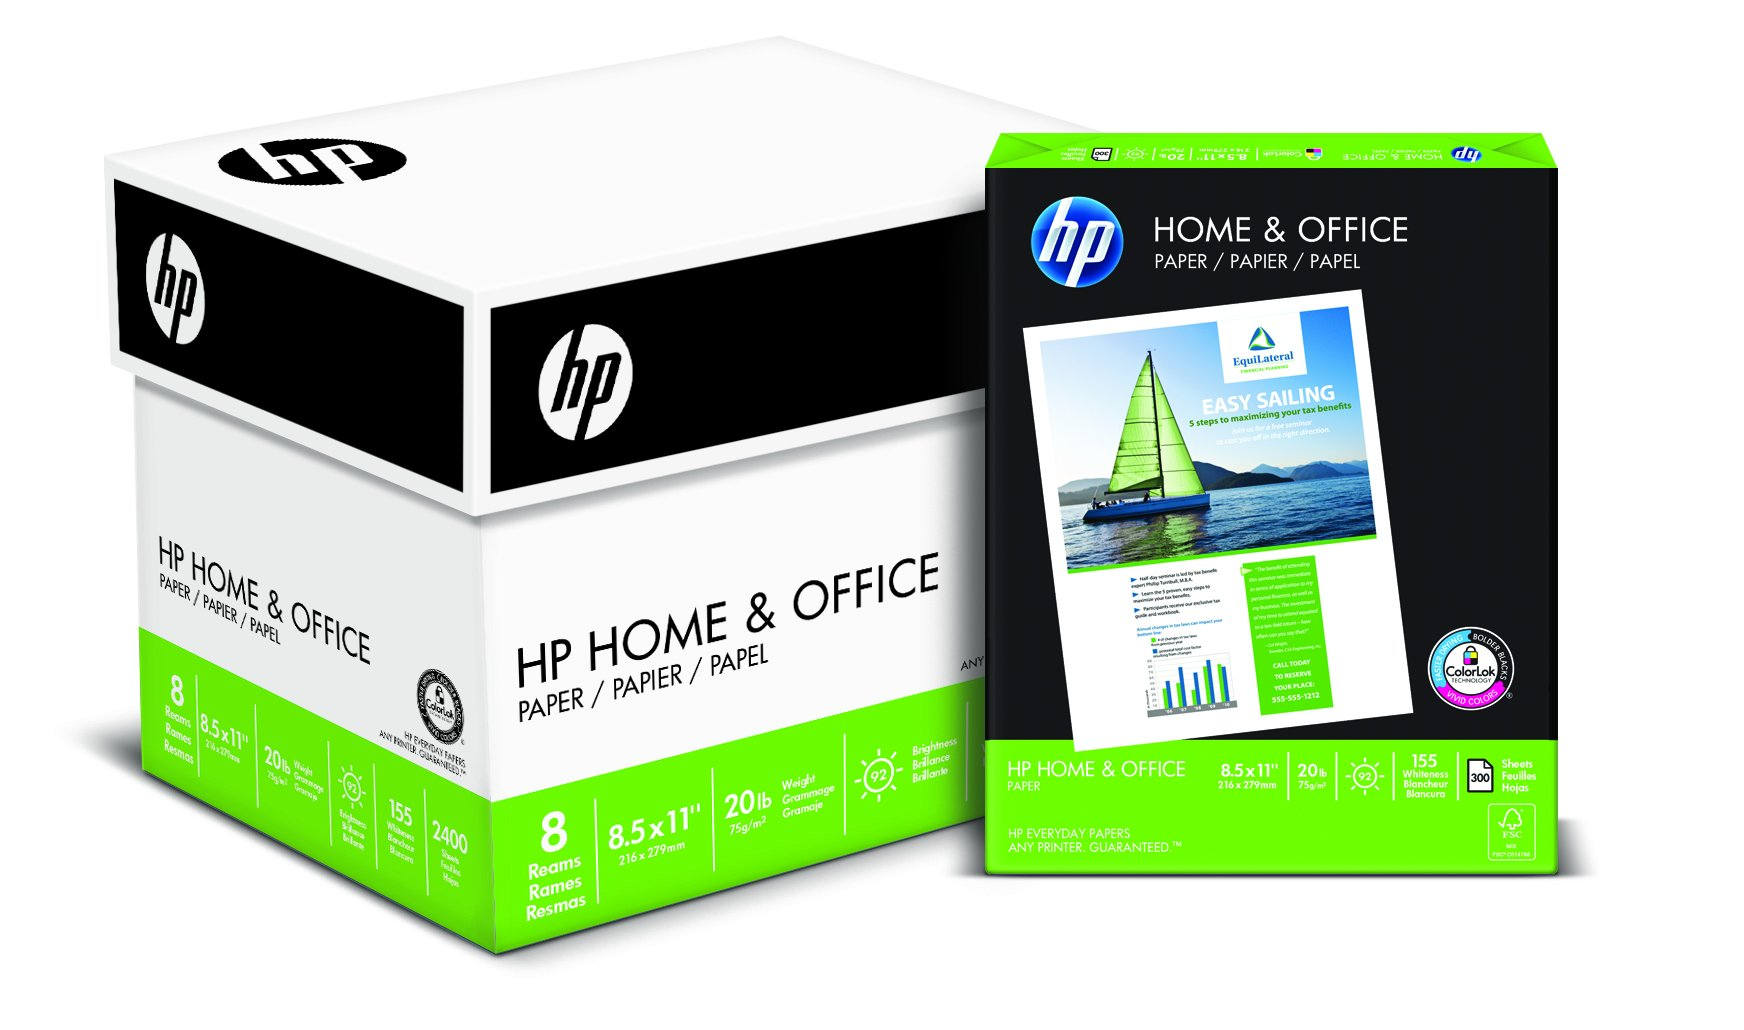 Hp Paper Home & Office Paper Poly Wrap 20Lb 8.5 X 11 Letter 92 Bright 2400 Sh.. 2